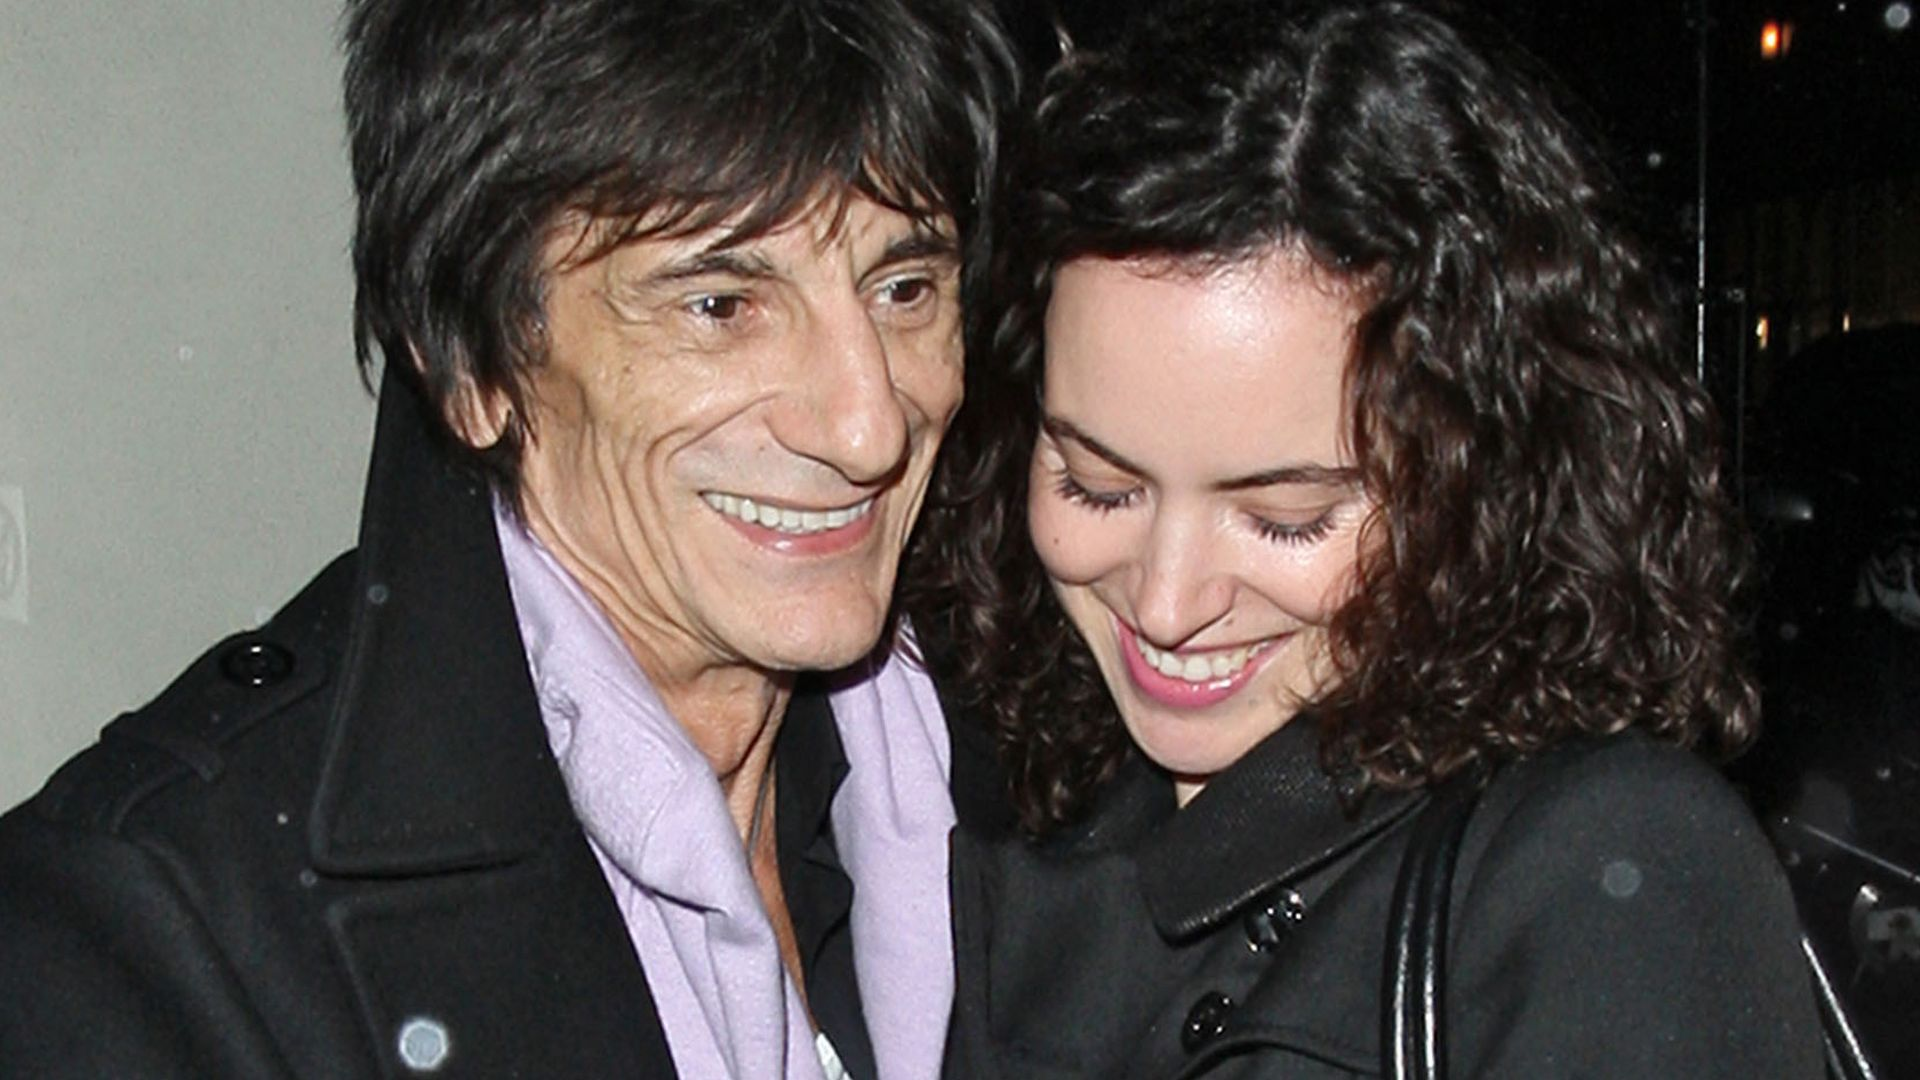 https://content1.promiflash.de/article-images/video_1080/ronnie-wood-und-seine-frau-sally.jpg